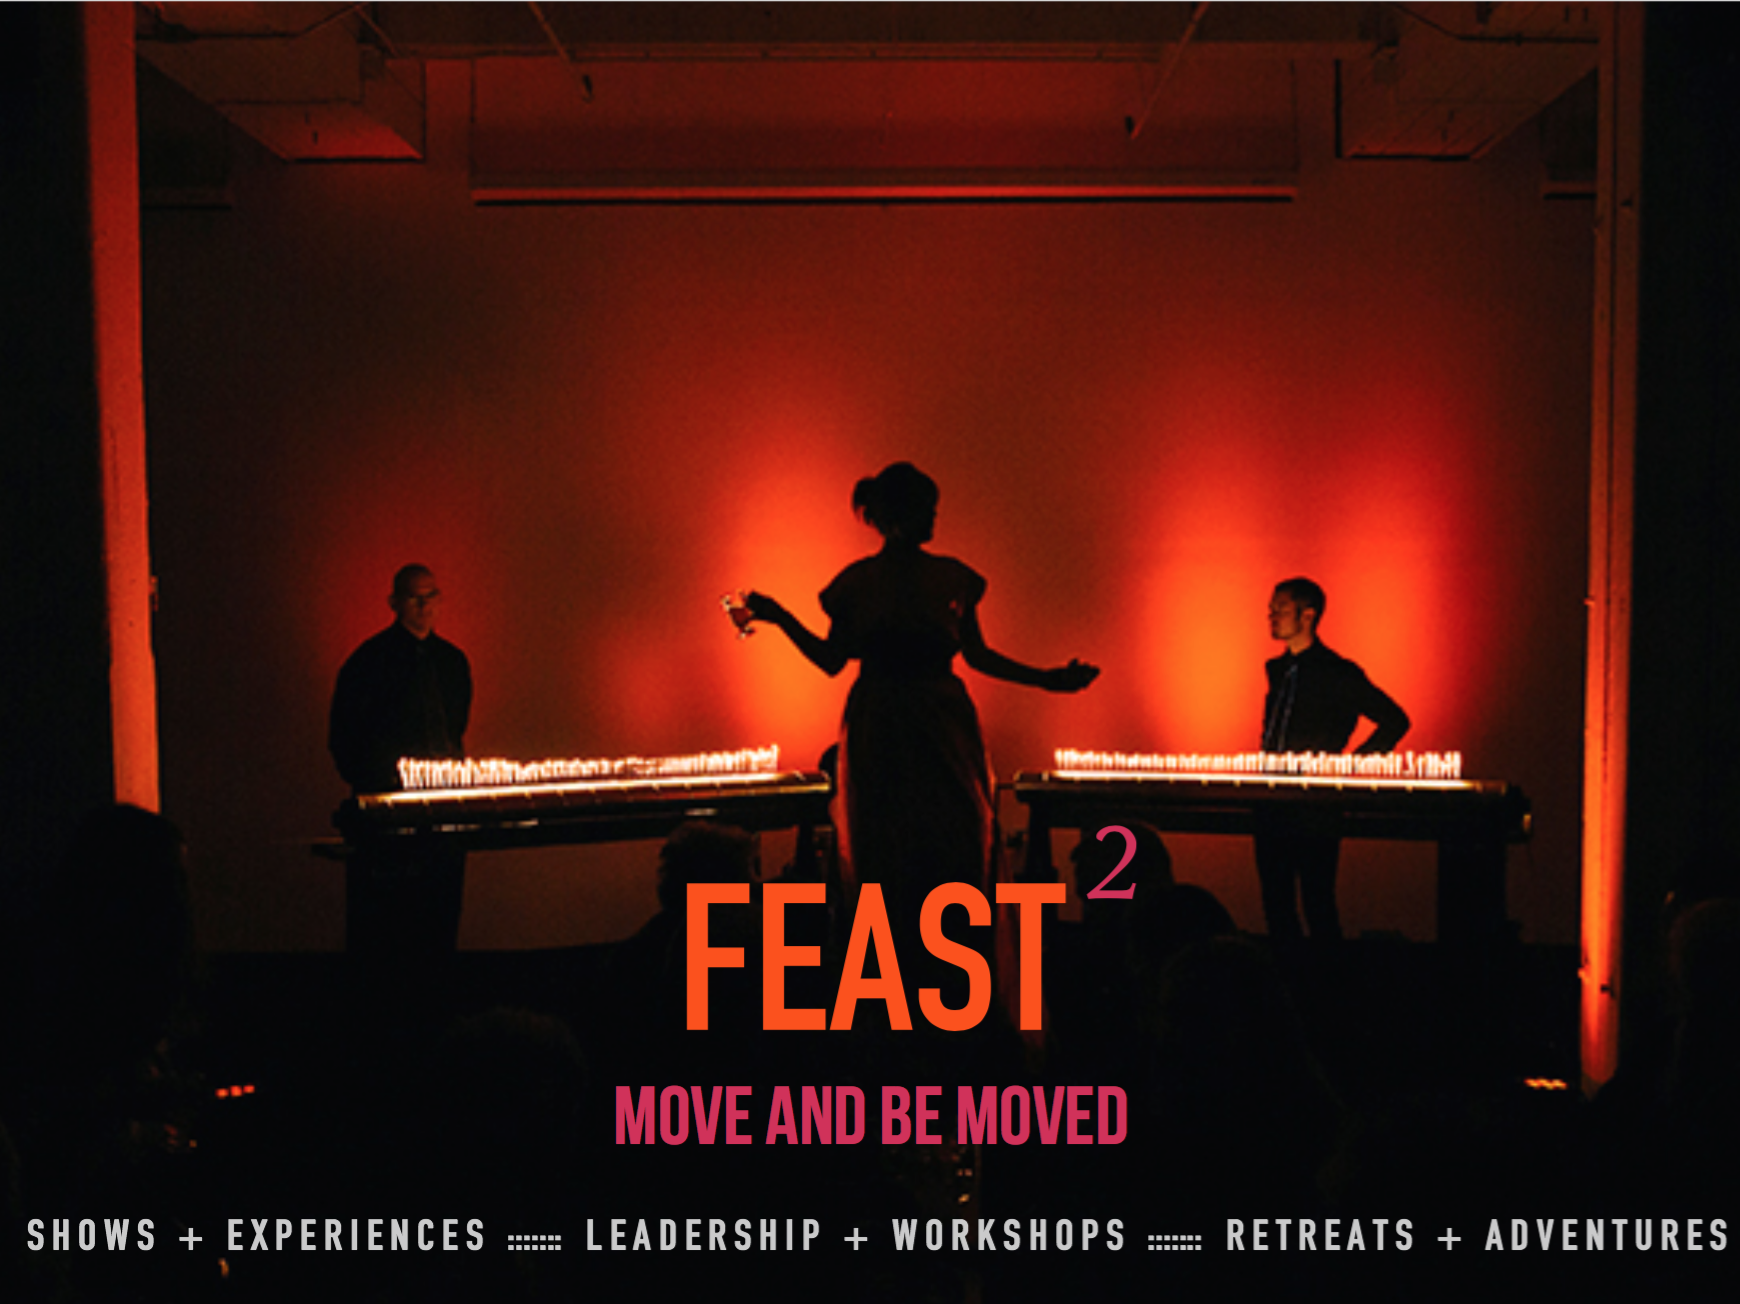 feast2-01.png